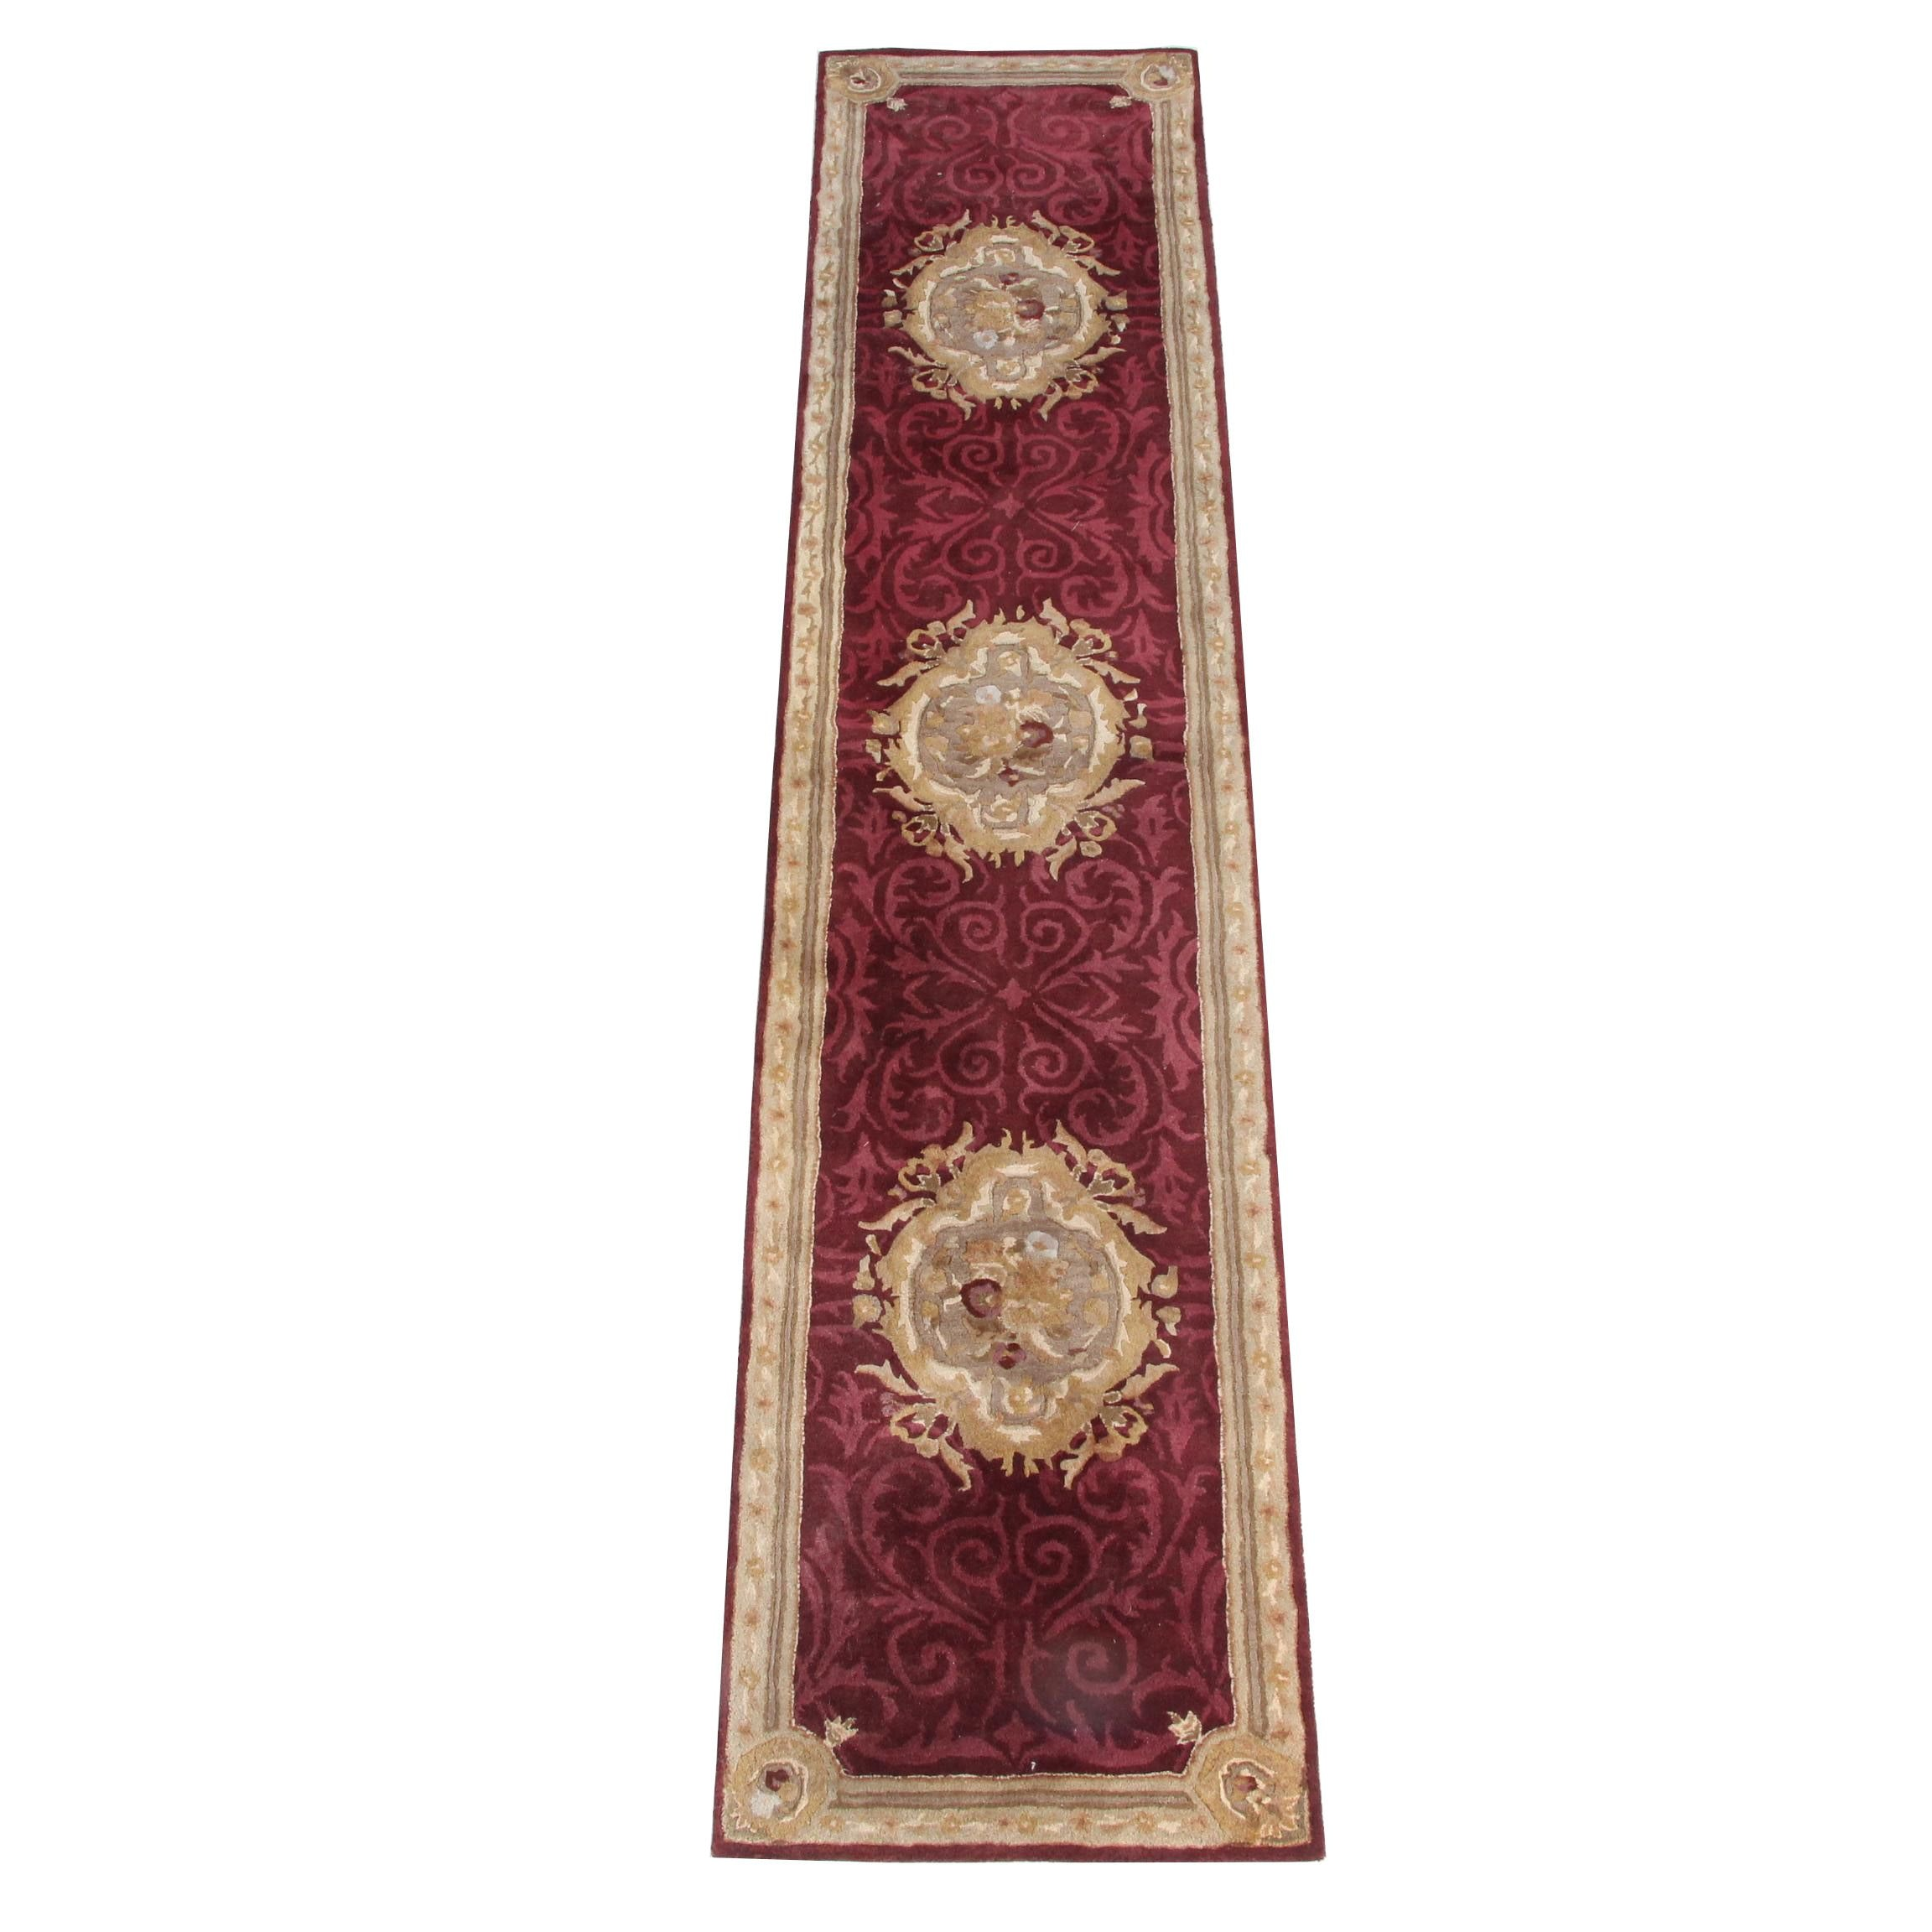 Hand-Tufted Indian Carved Wool Carpet Runner by Safavieh